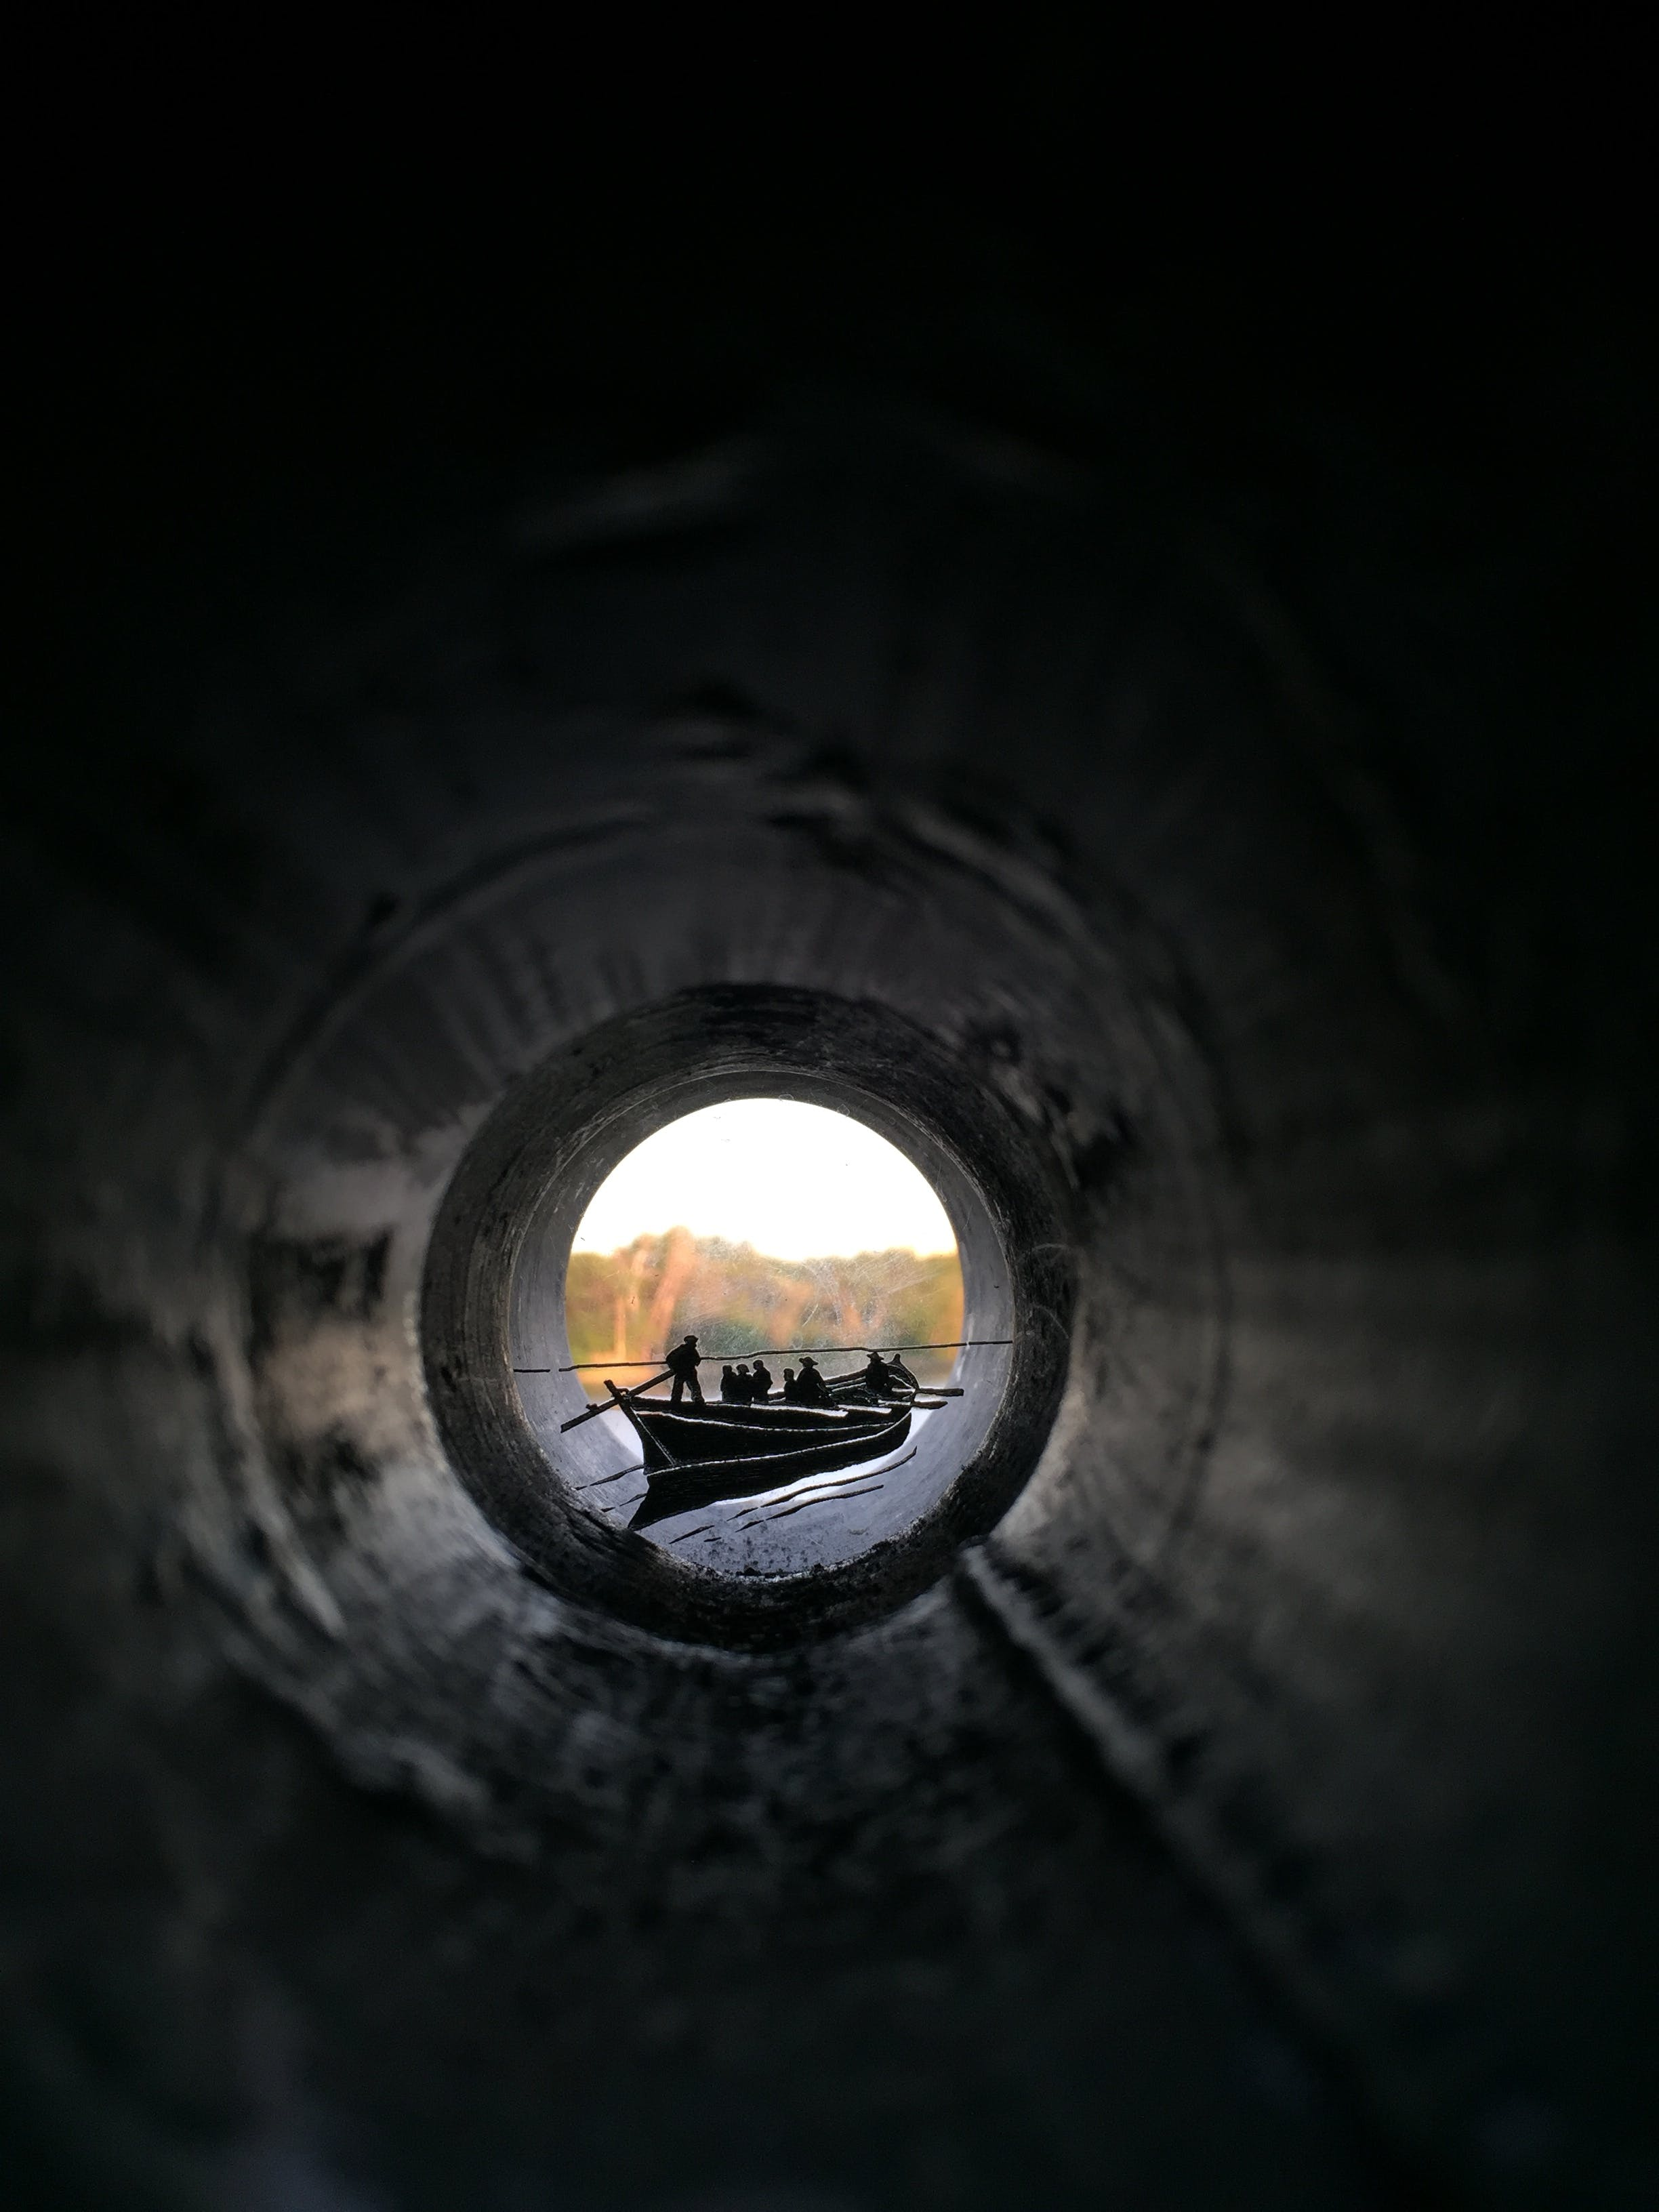 People Riding Canoe Boat View from Inside Pipe